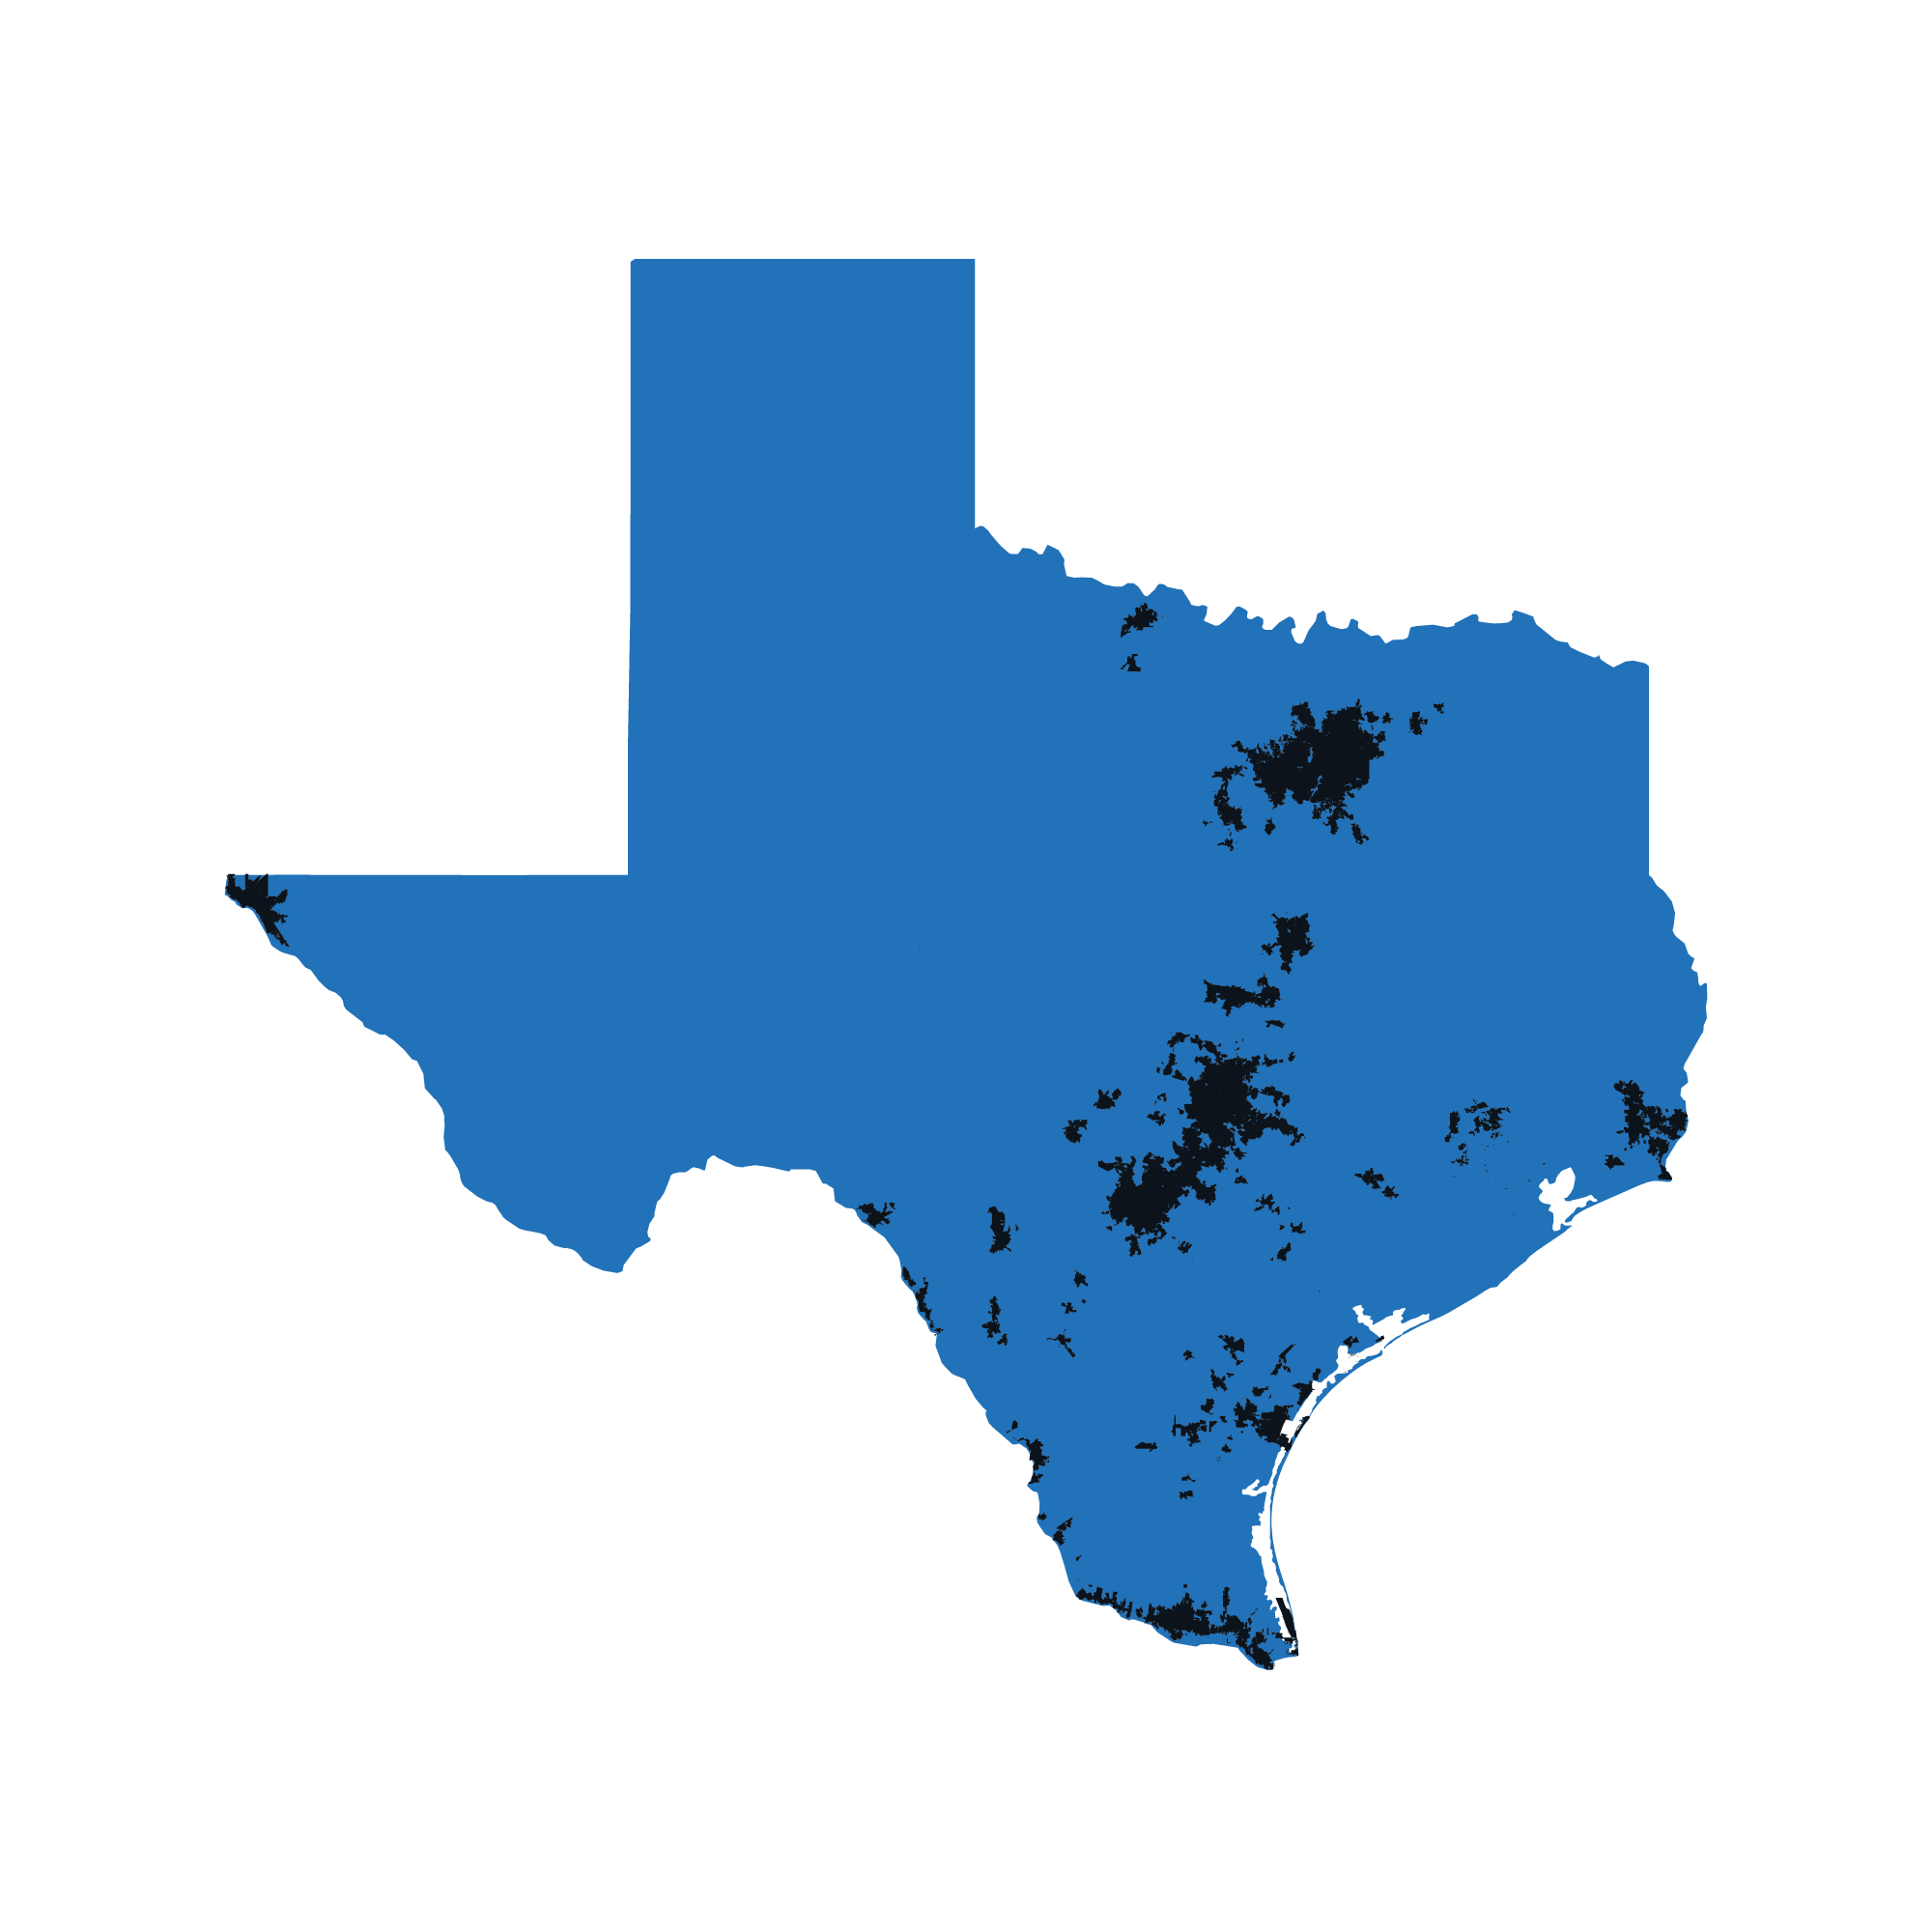 Texas map data image